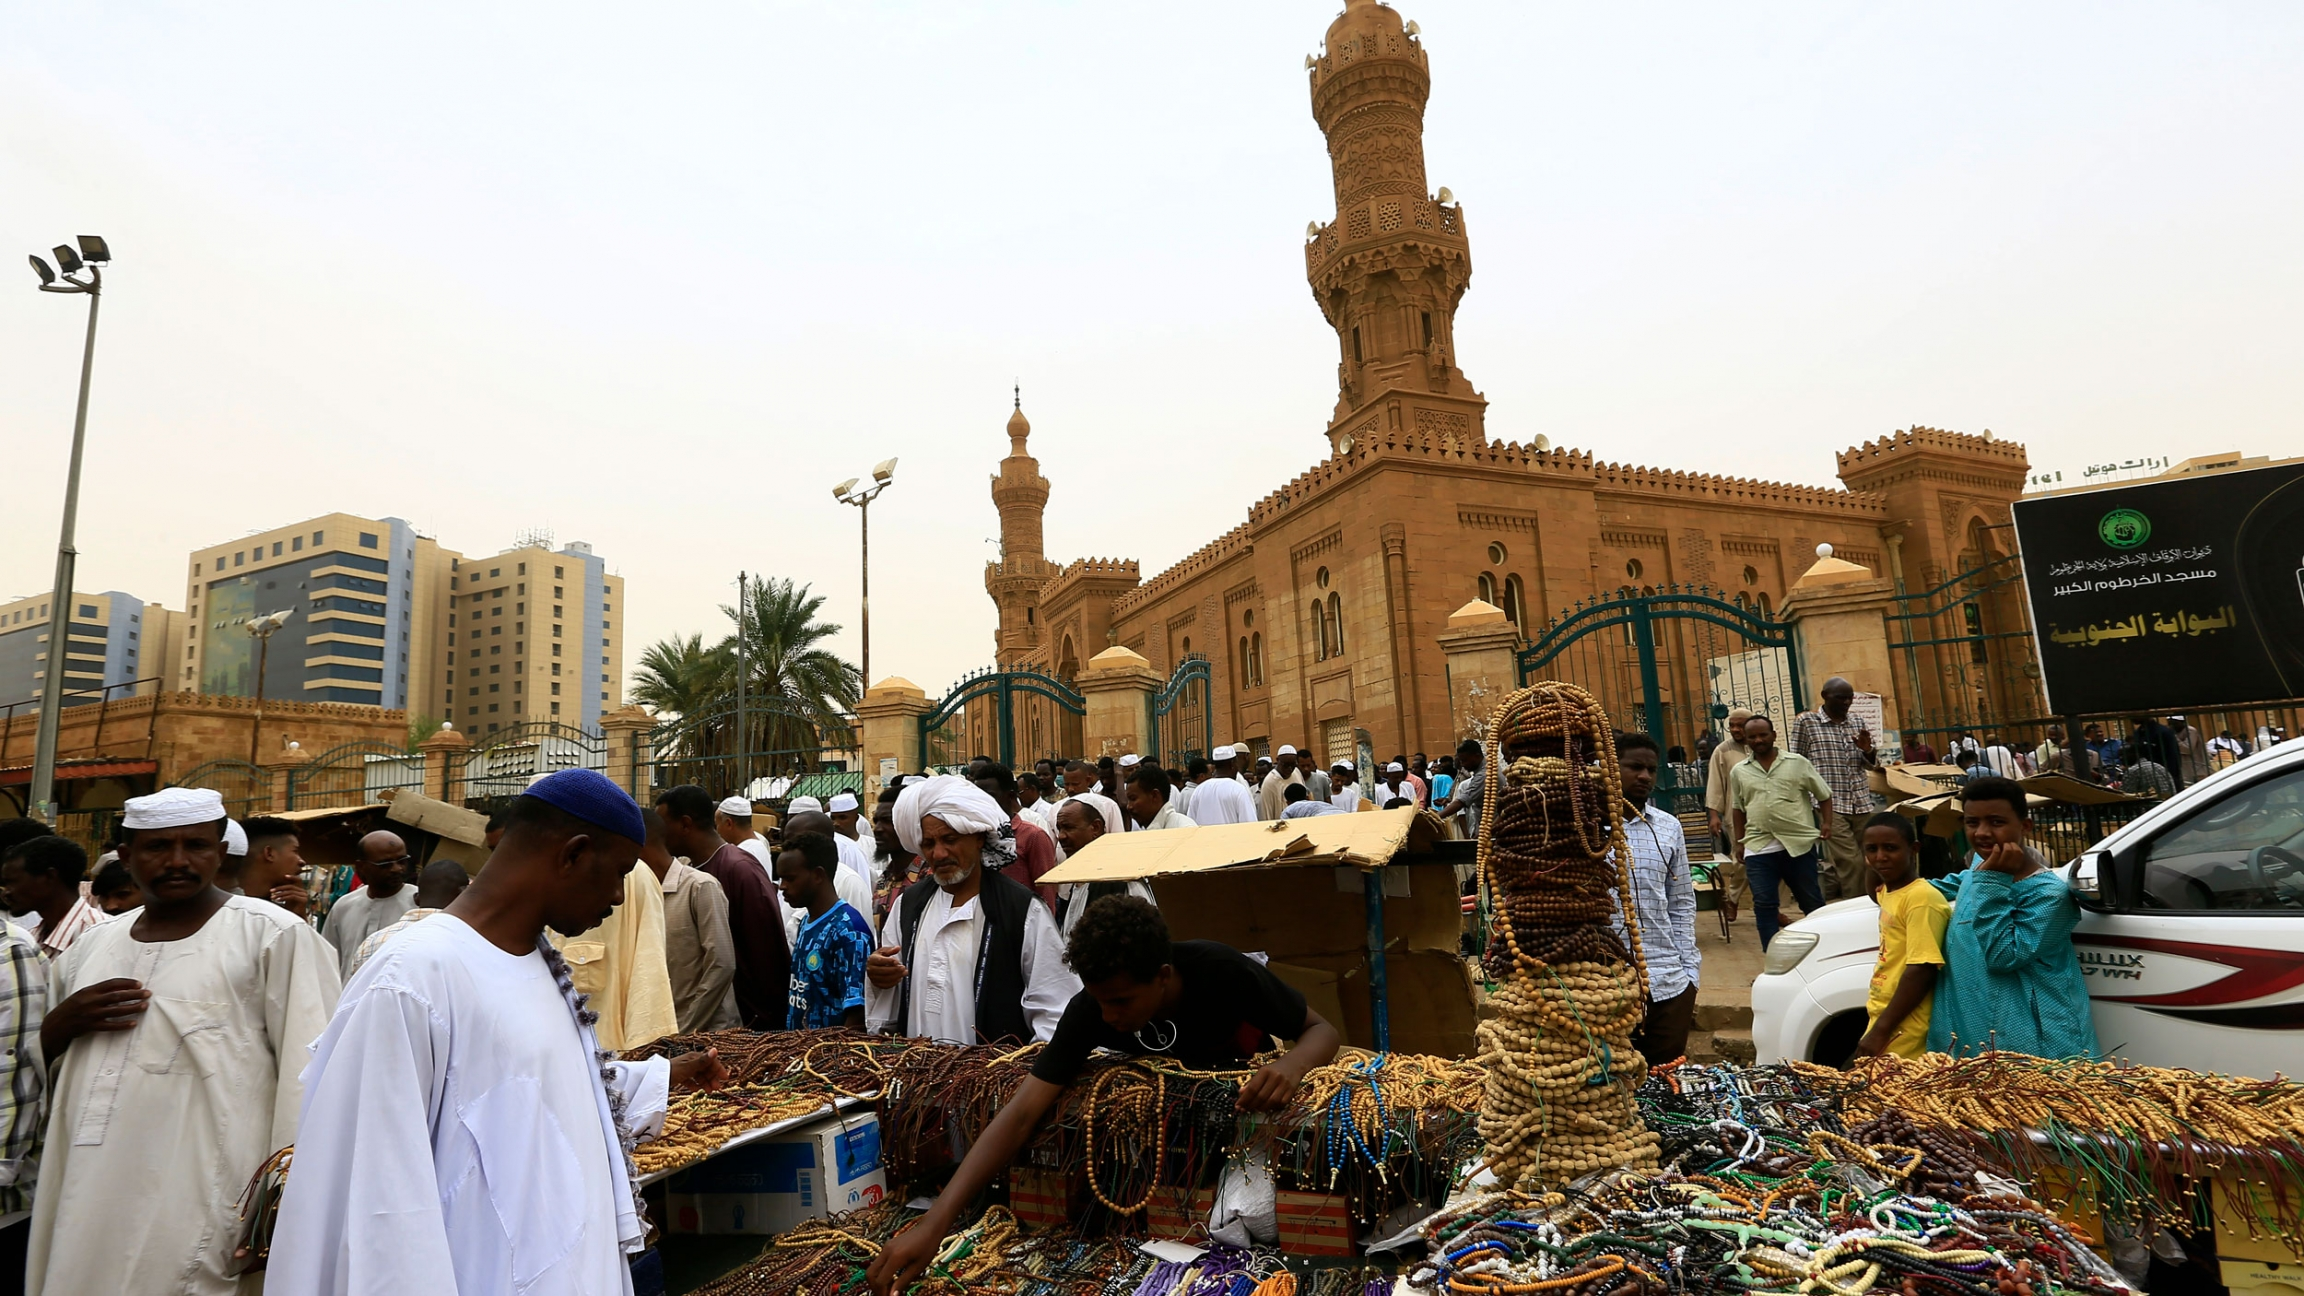 A large crowd od people are shown outside of the tan-colored Grand Mosque with a man selling beaded jewelry in the nearground.